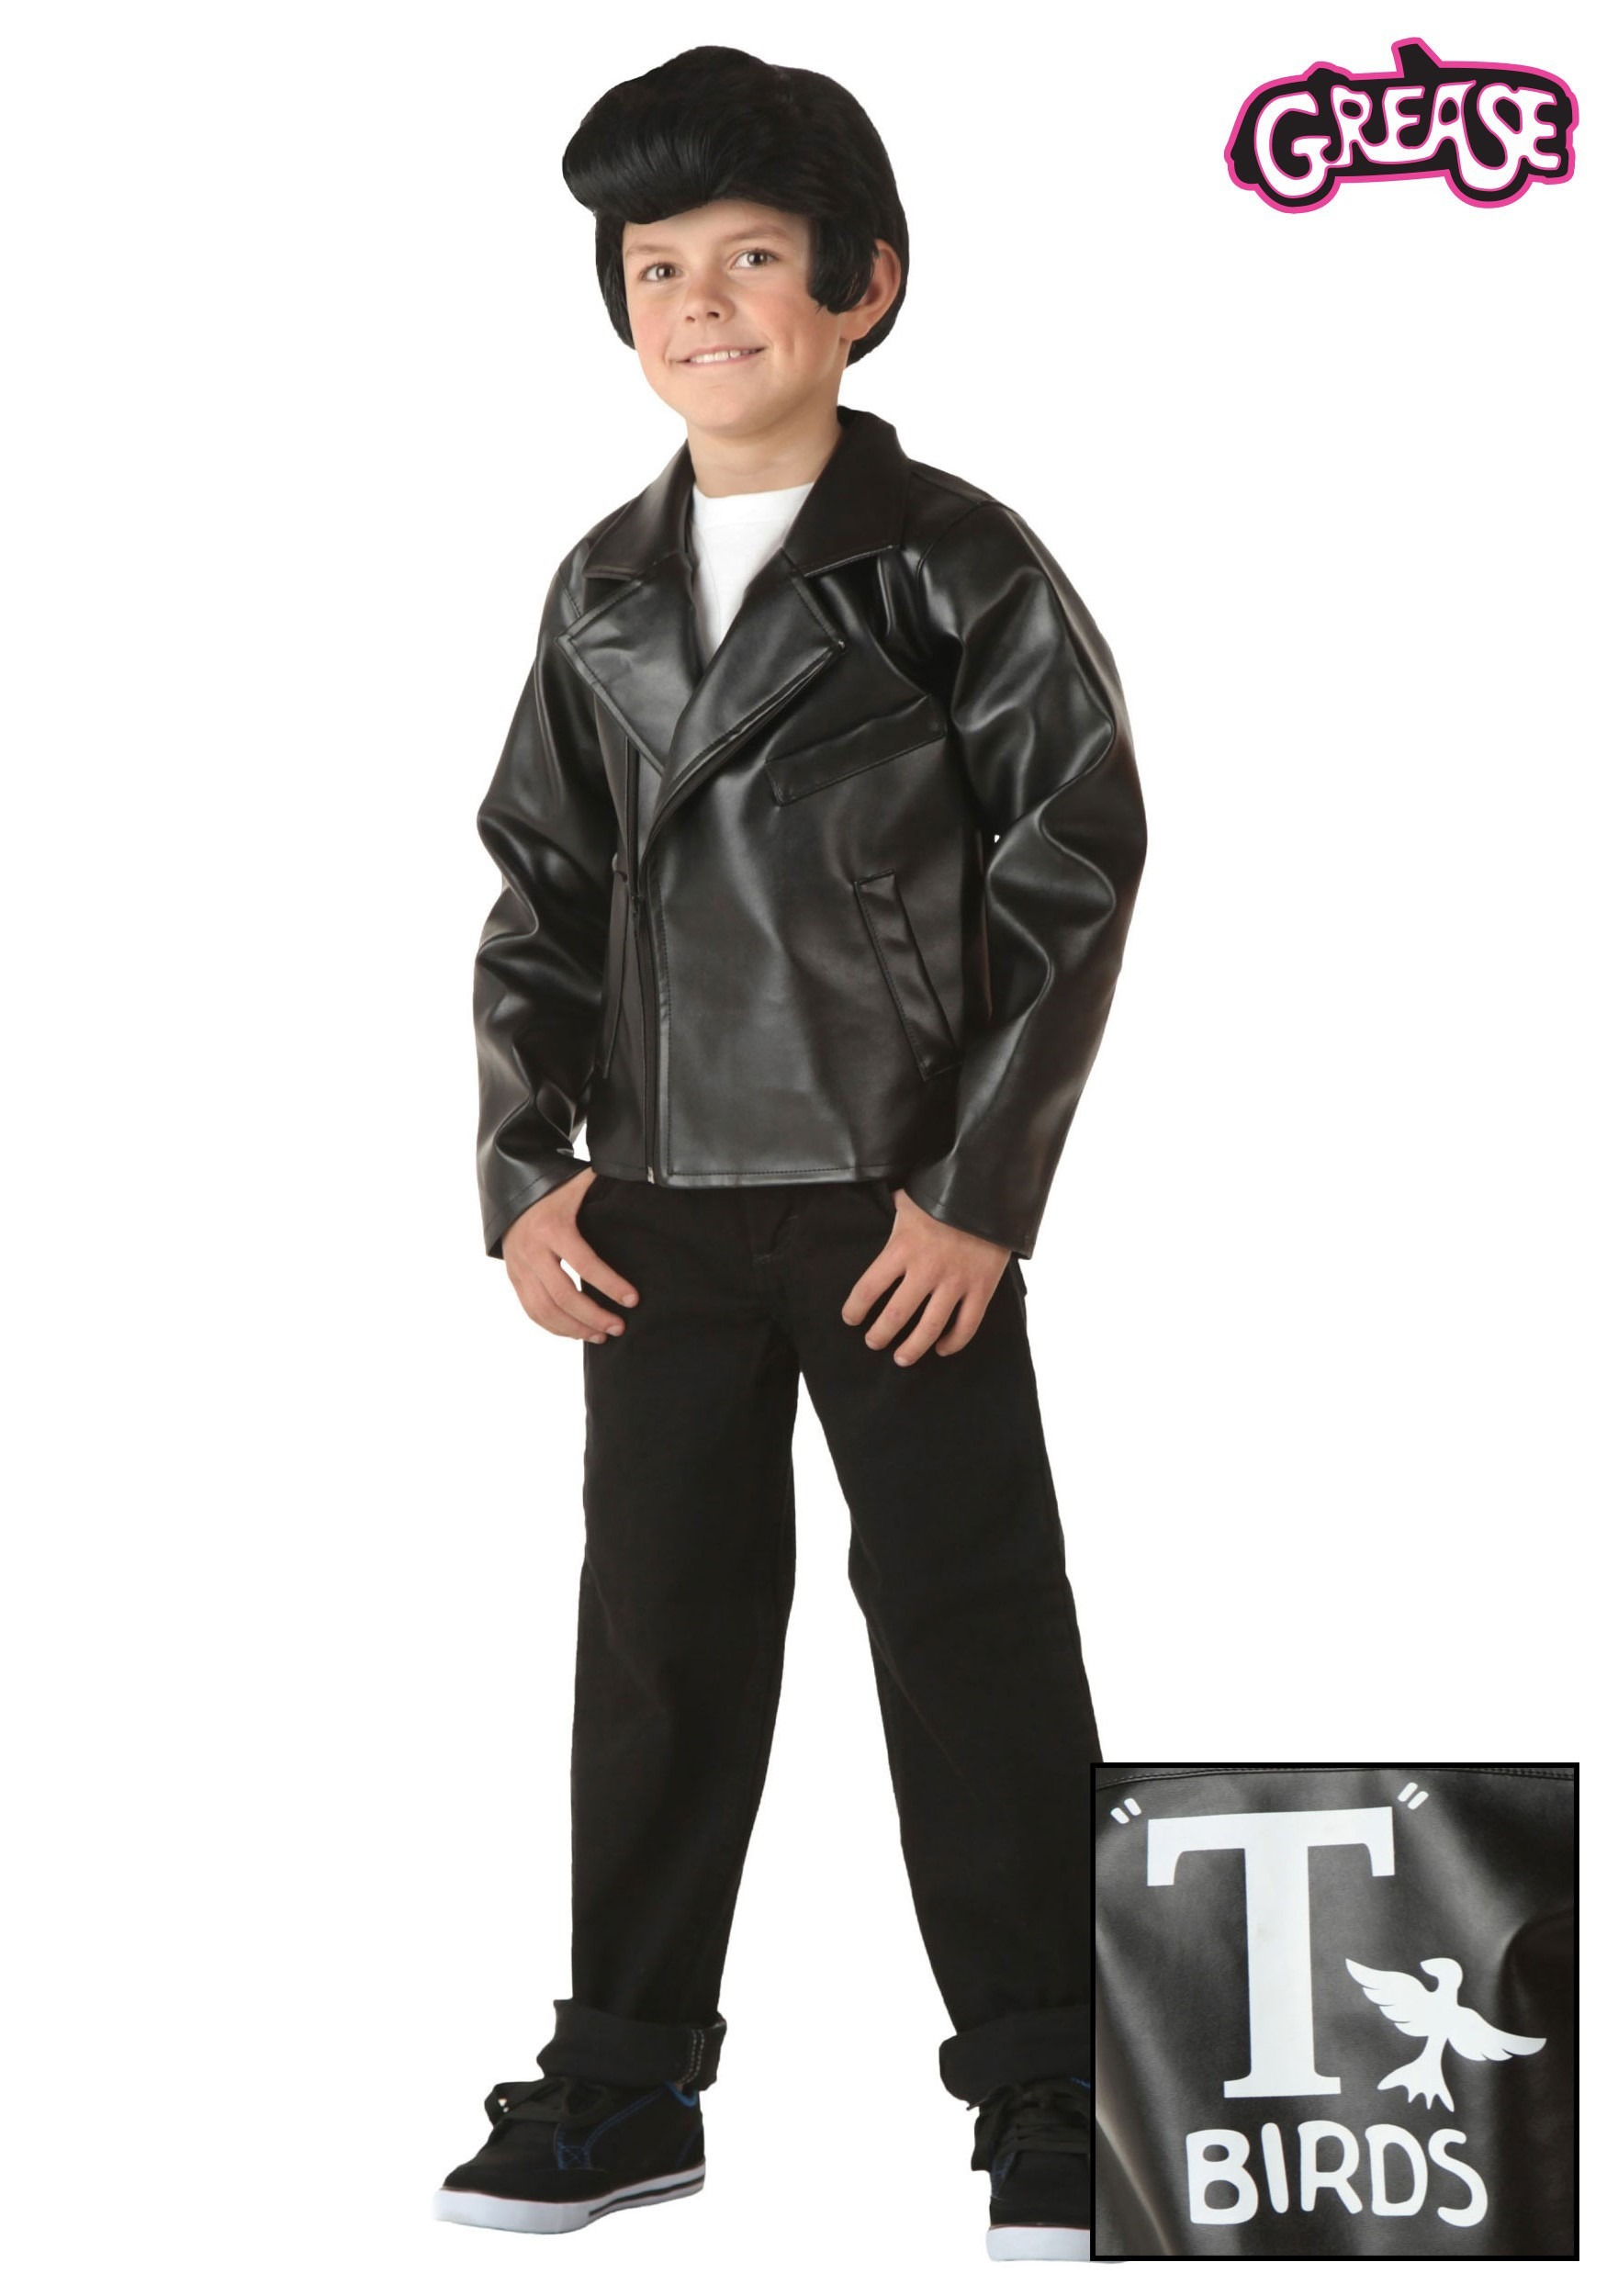 kids grease t birds jacket - Greece Halloween Costumes